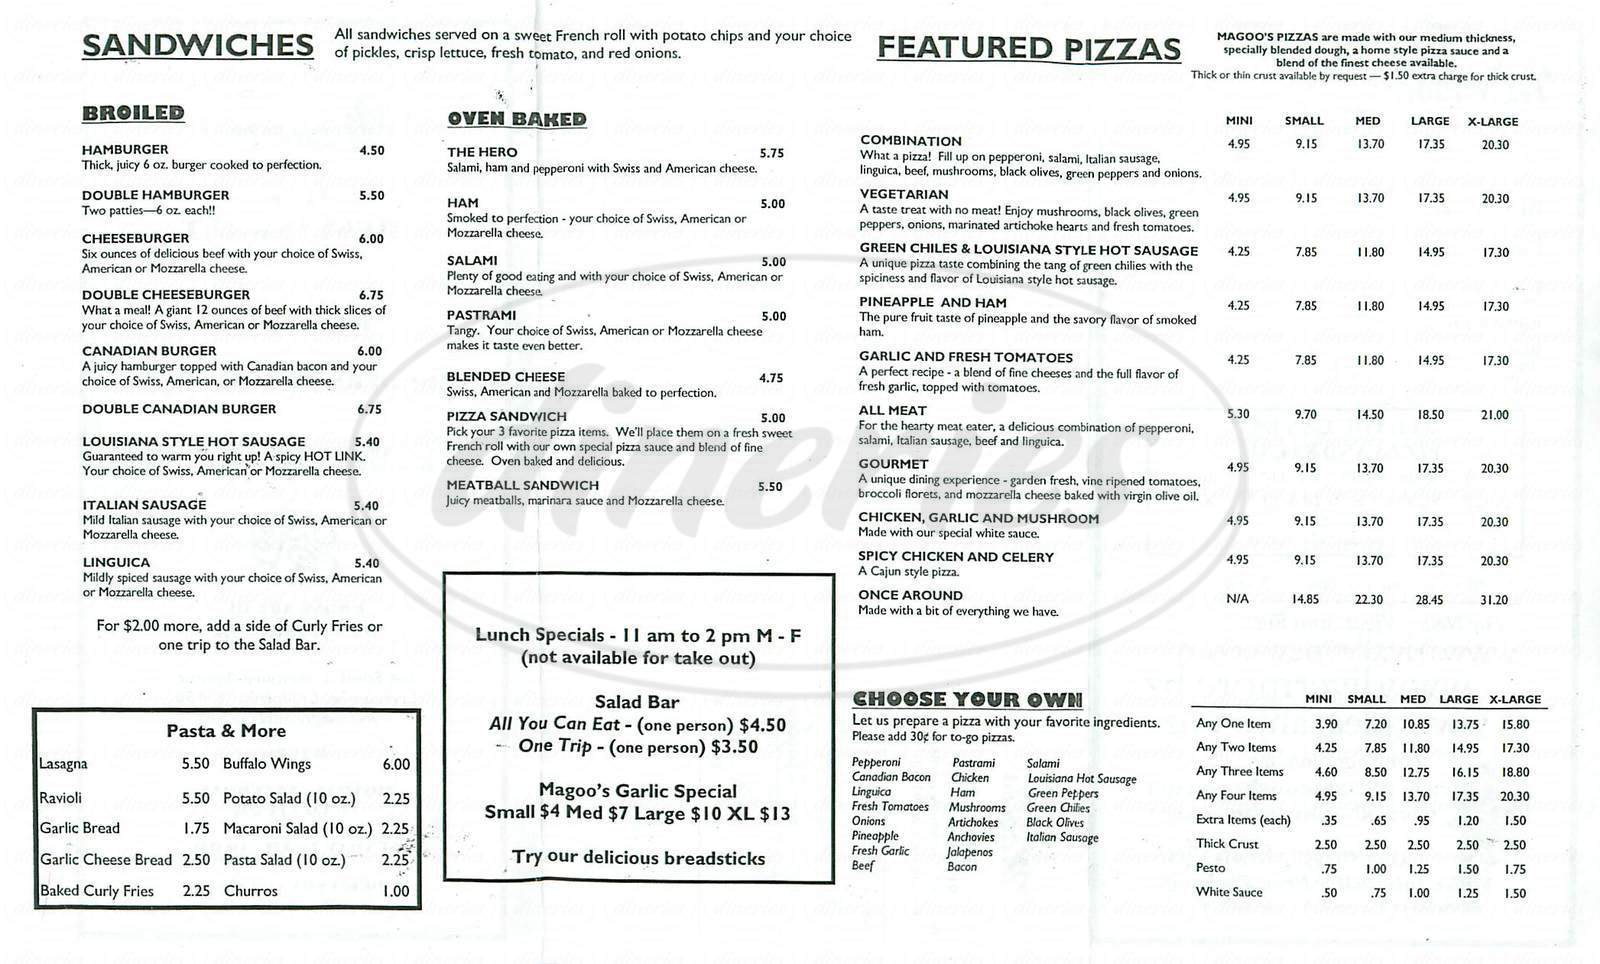 menu for Magoos Pizza